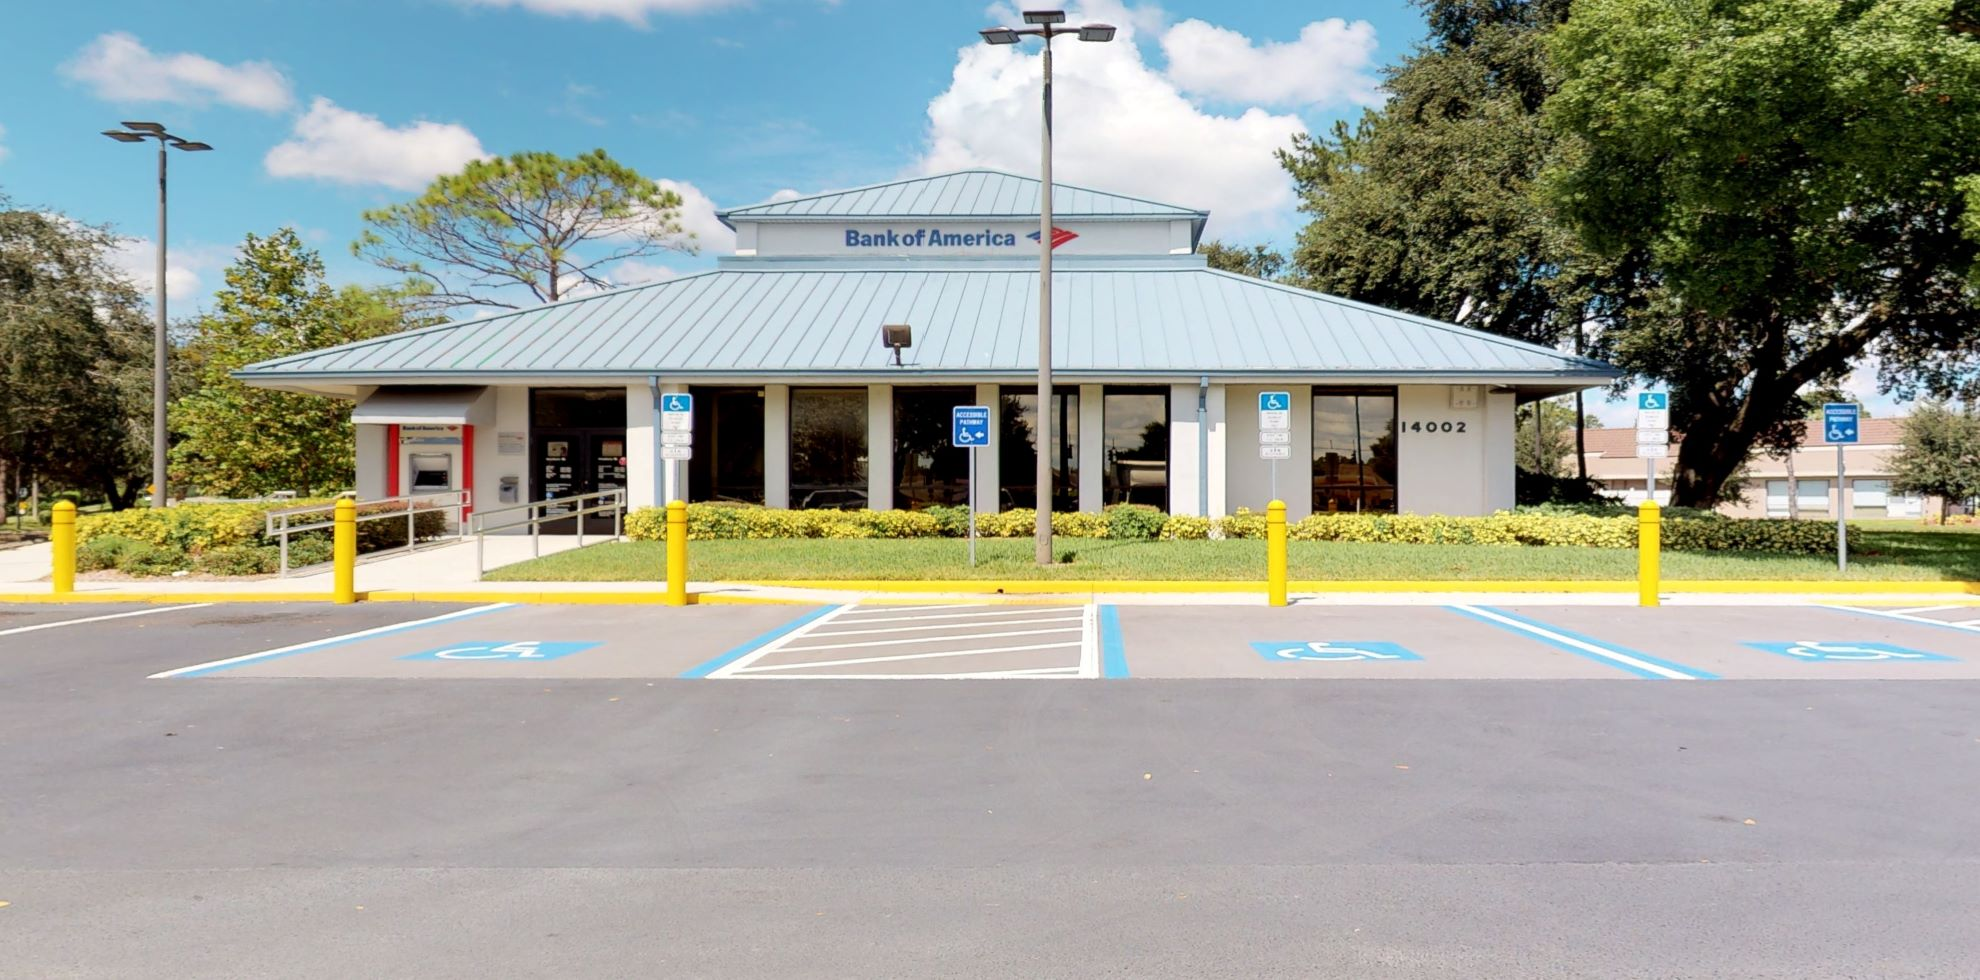 Bank of America financial center with drive-thru ATM | 14002 N Dale Mabry Hwy, Tampa, FL 33618